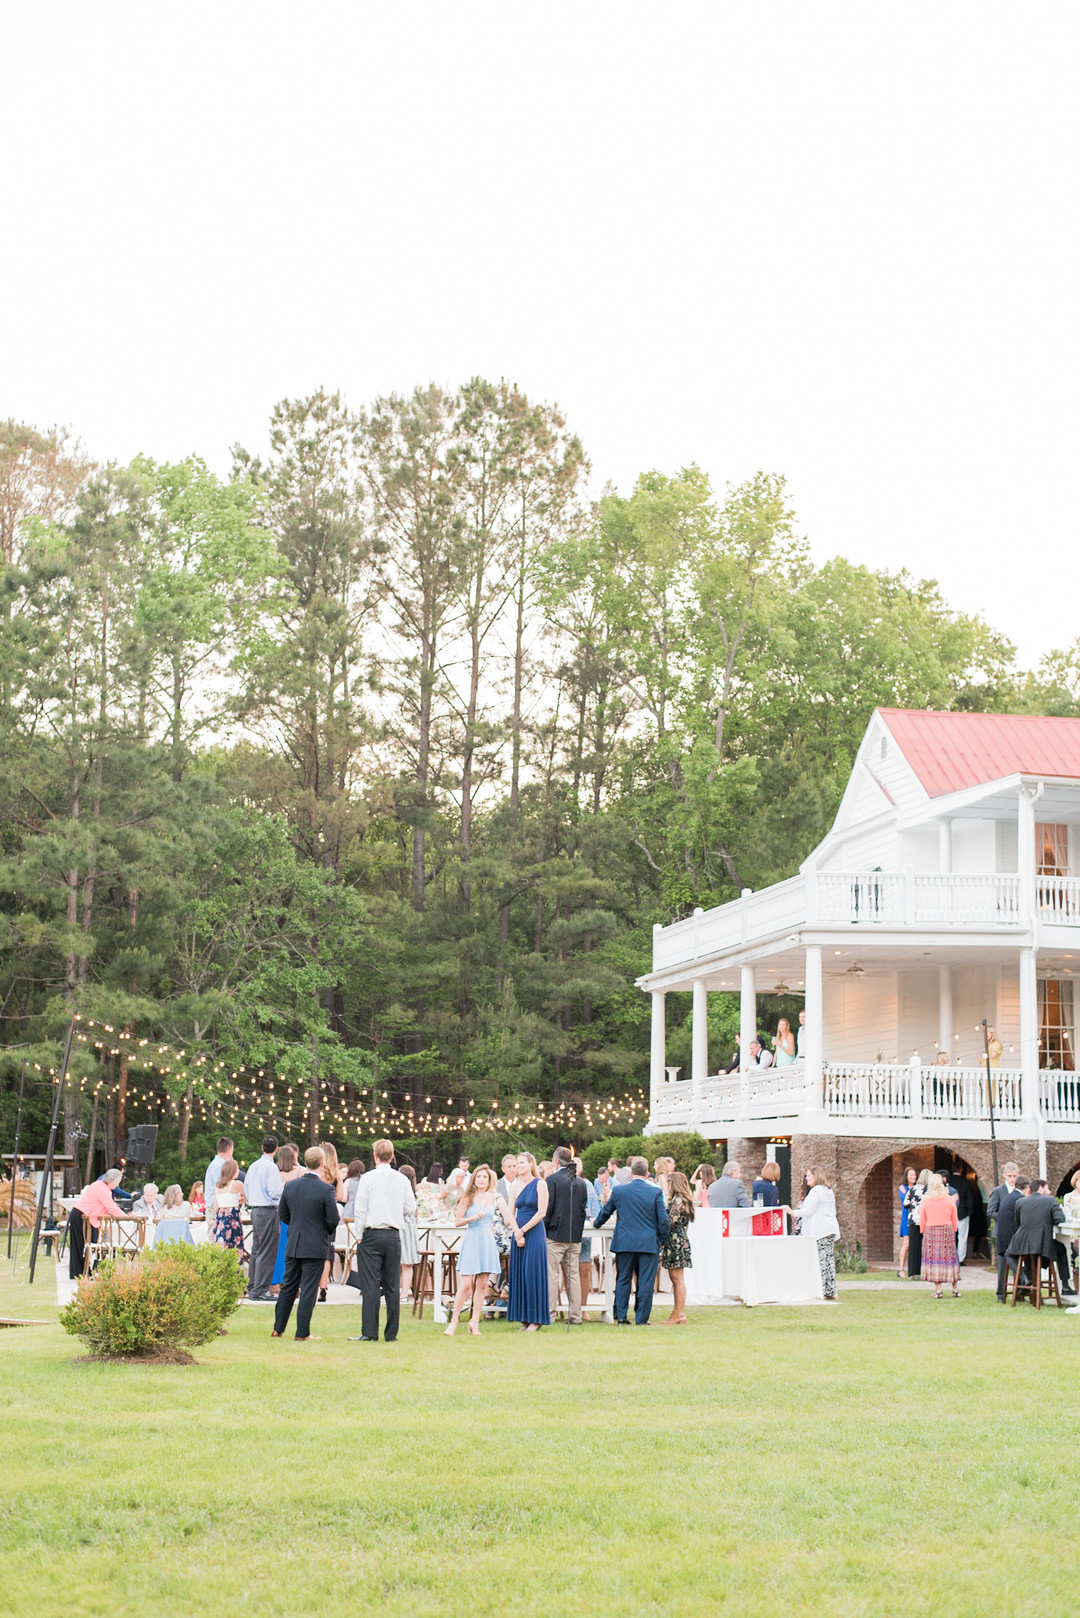 old-wide-awake-plantation-wedding-19.jpg